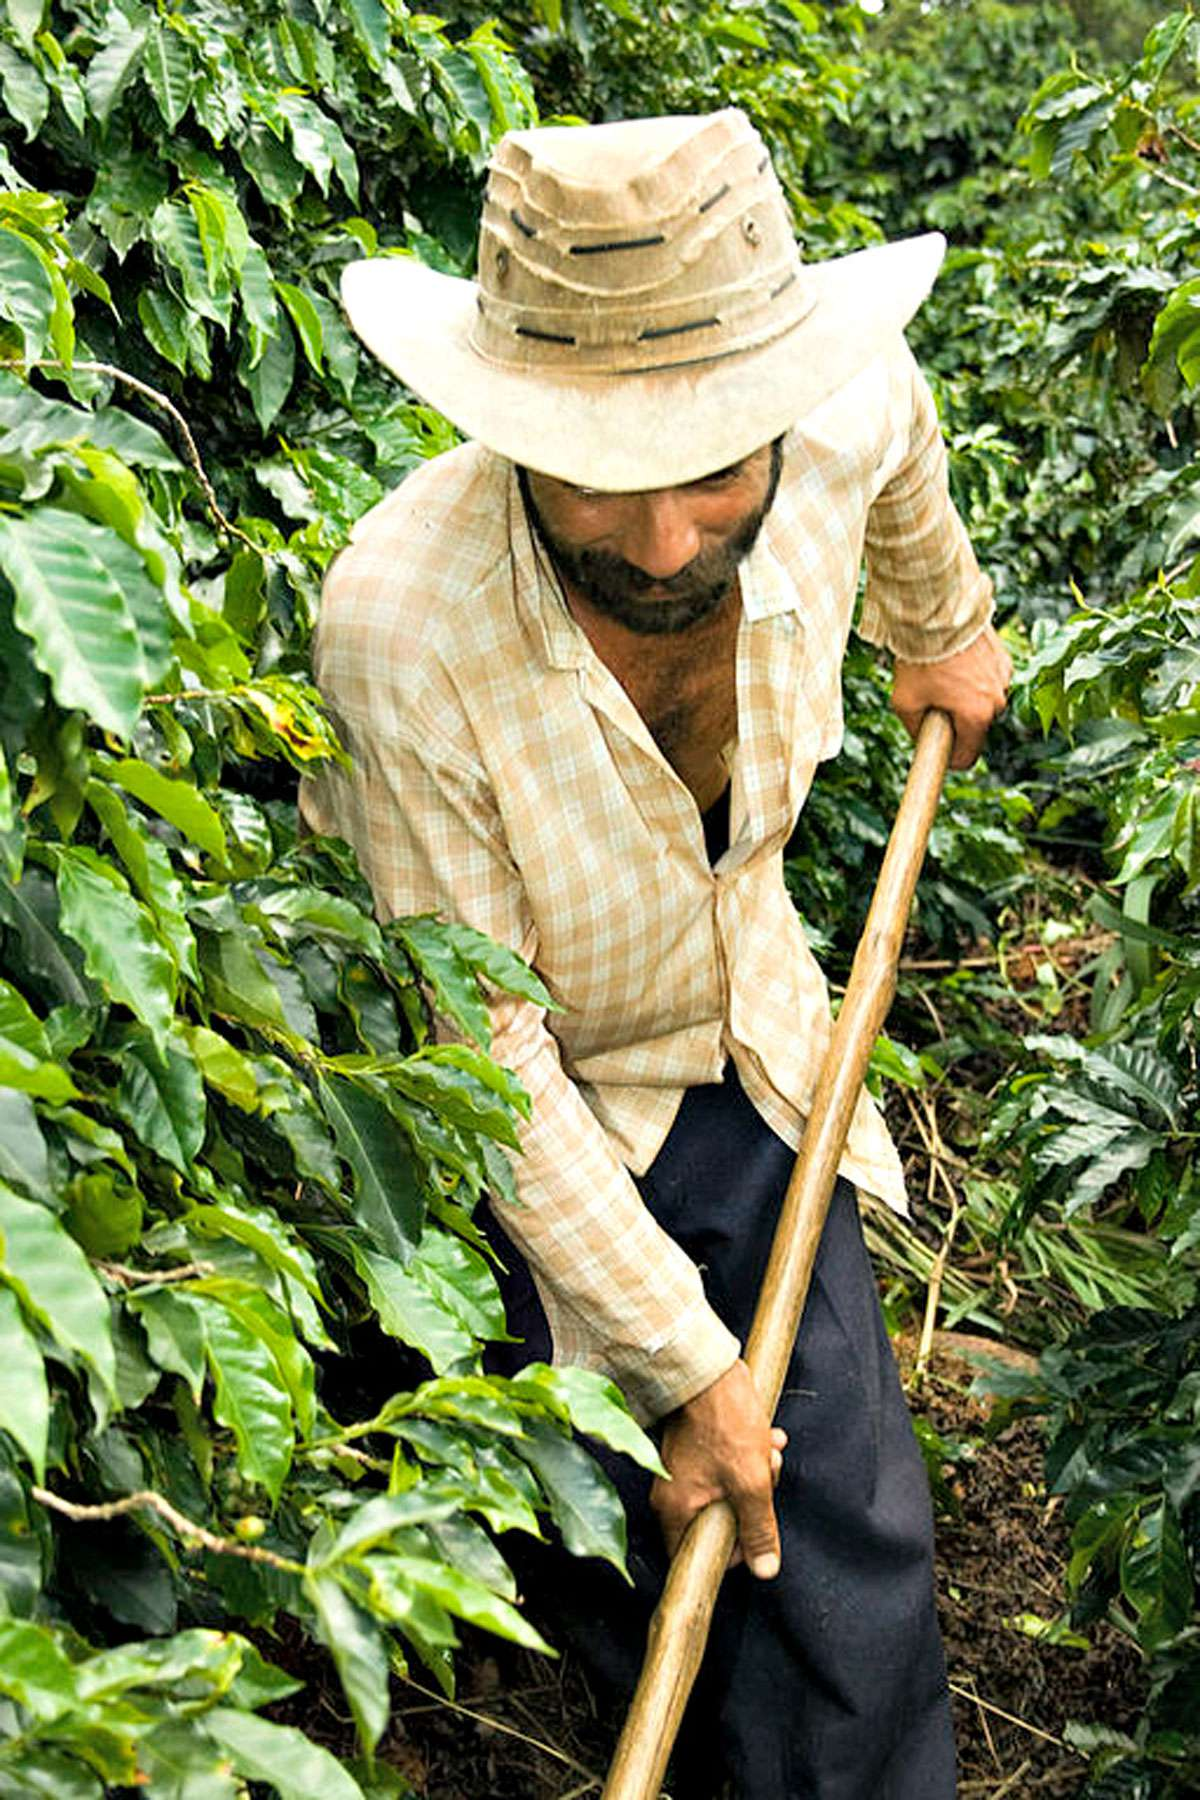 Coffee farmer in Brazil. Credit: Creative Commons